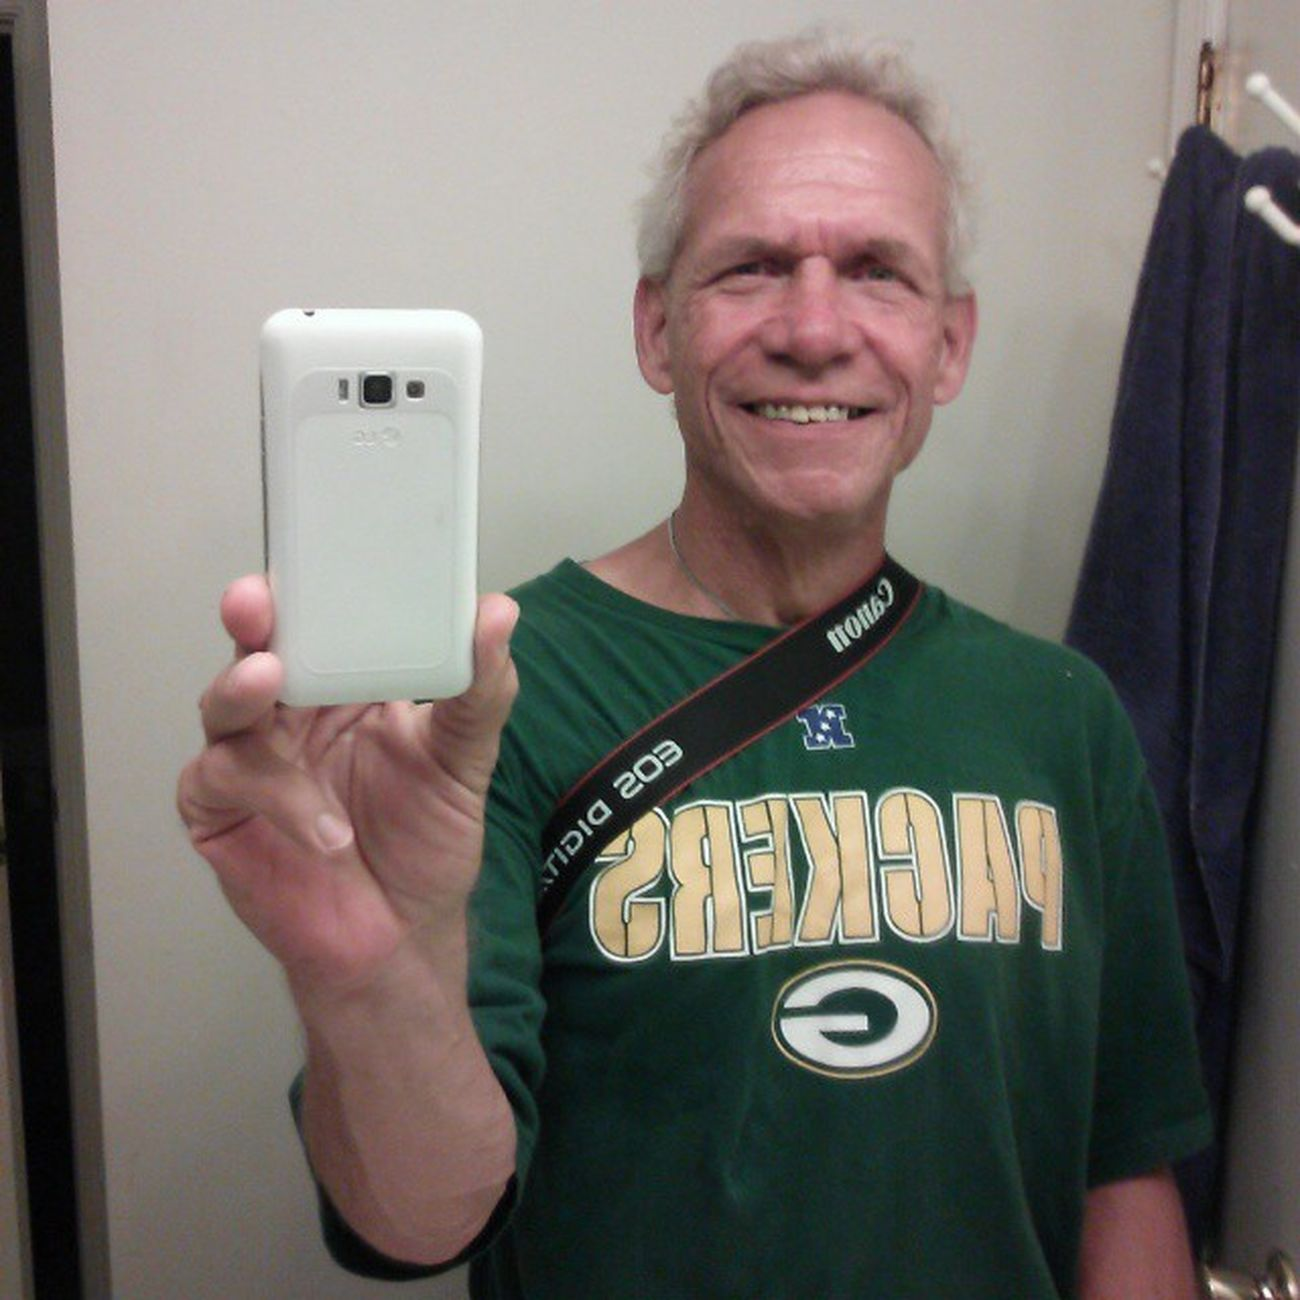 2nd half is our half... Greenbay Packers